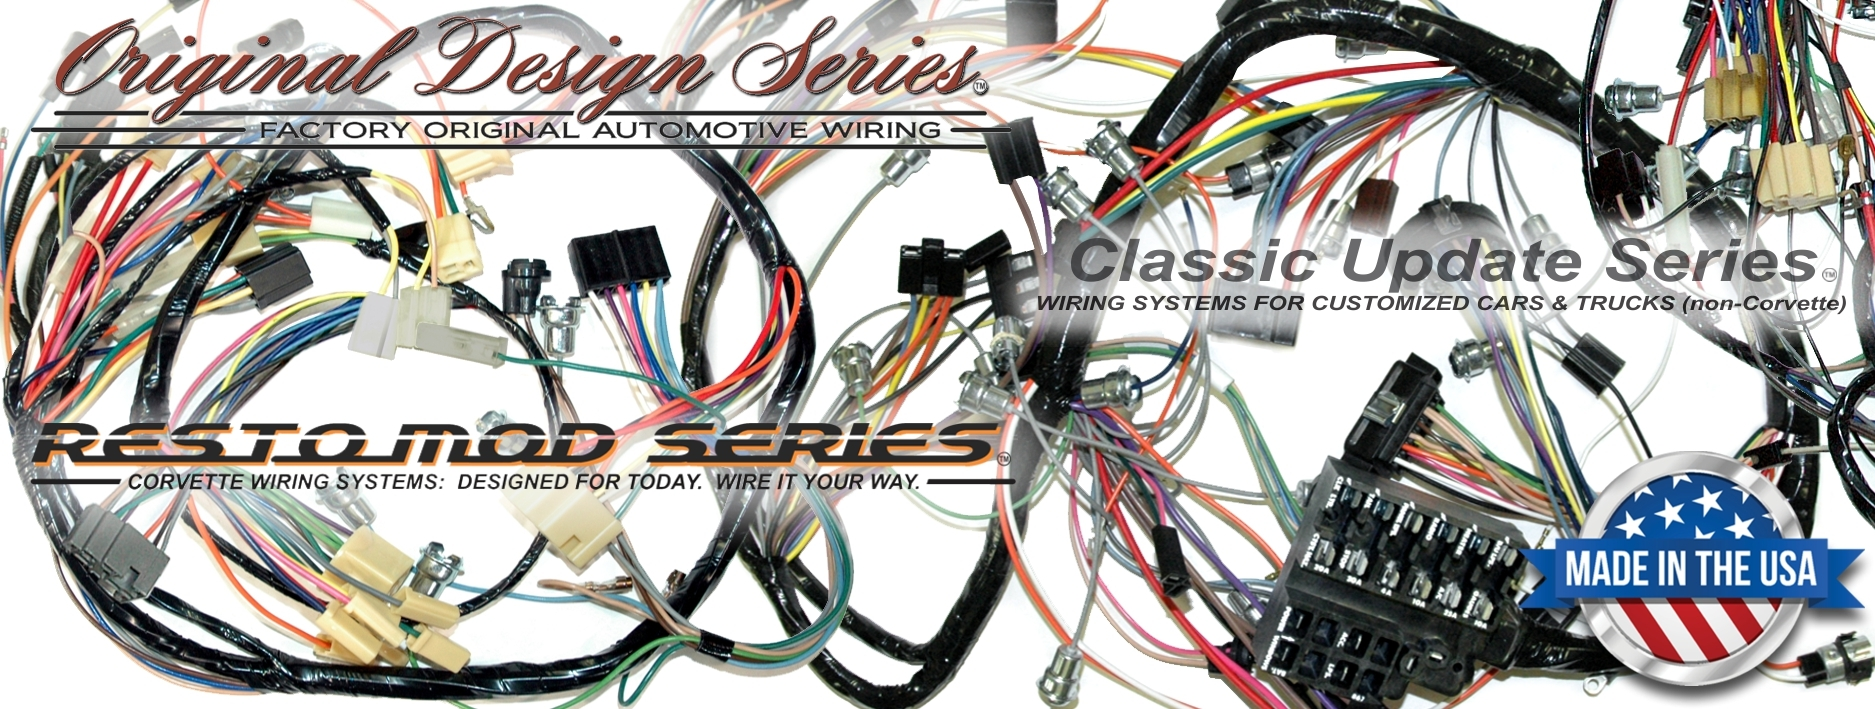 Exact OEM Reproduction Wiring Harnesses and RestoMod Wiring Systems on 88 wrangler wiring, 88 f350 wiring, 88 thunderbird wiring, 88 mustang wiring,